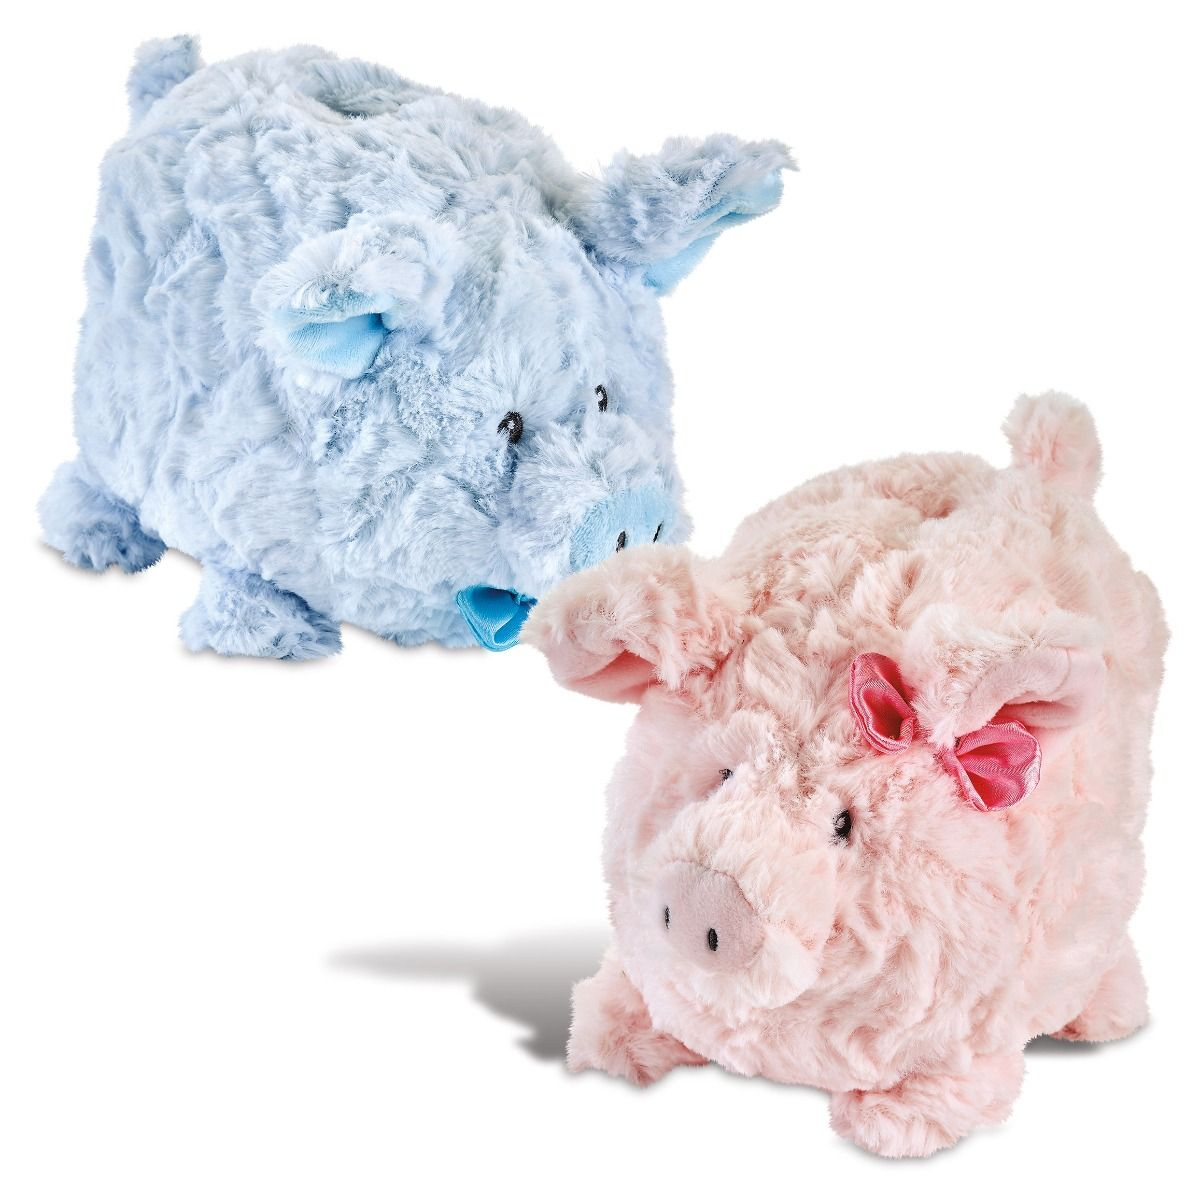 Plush Piggy Bank